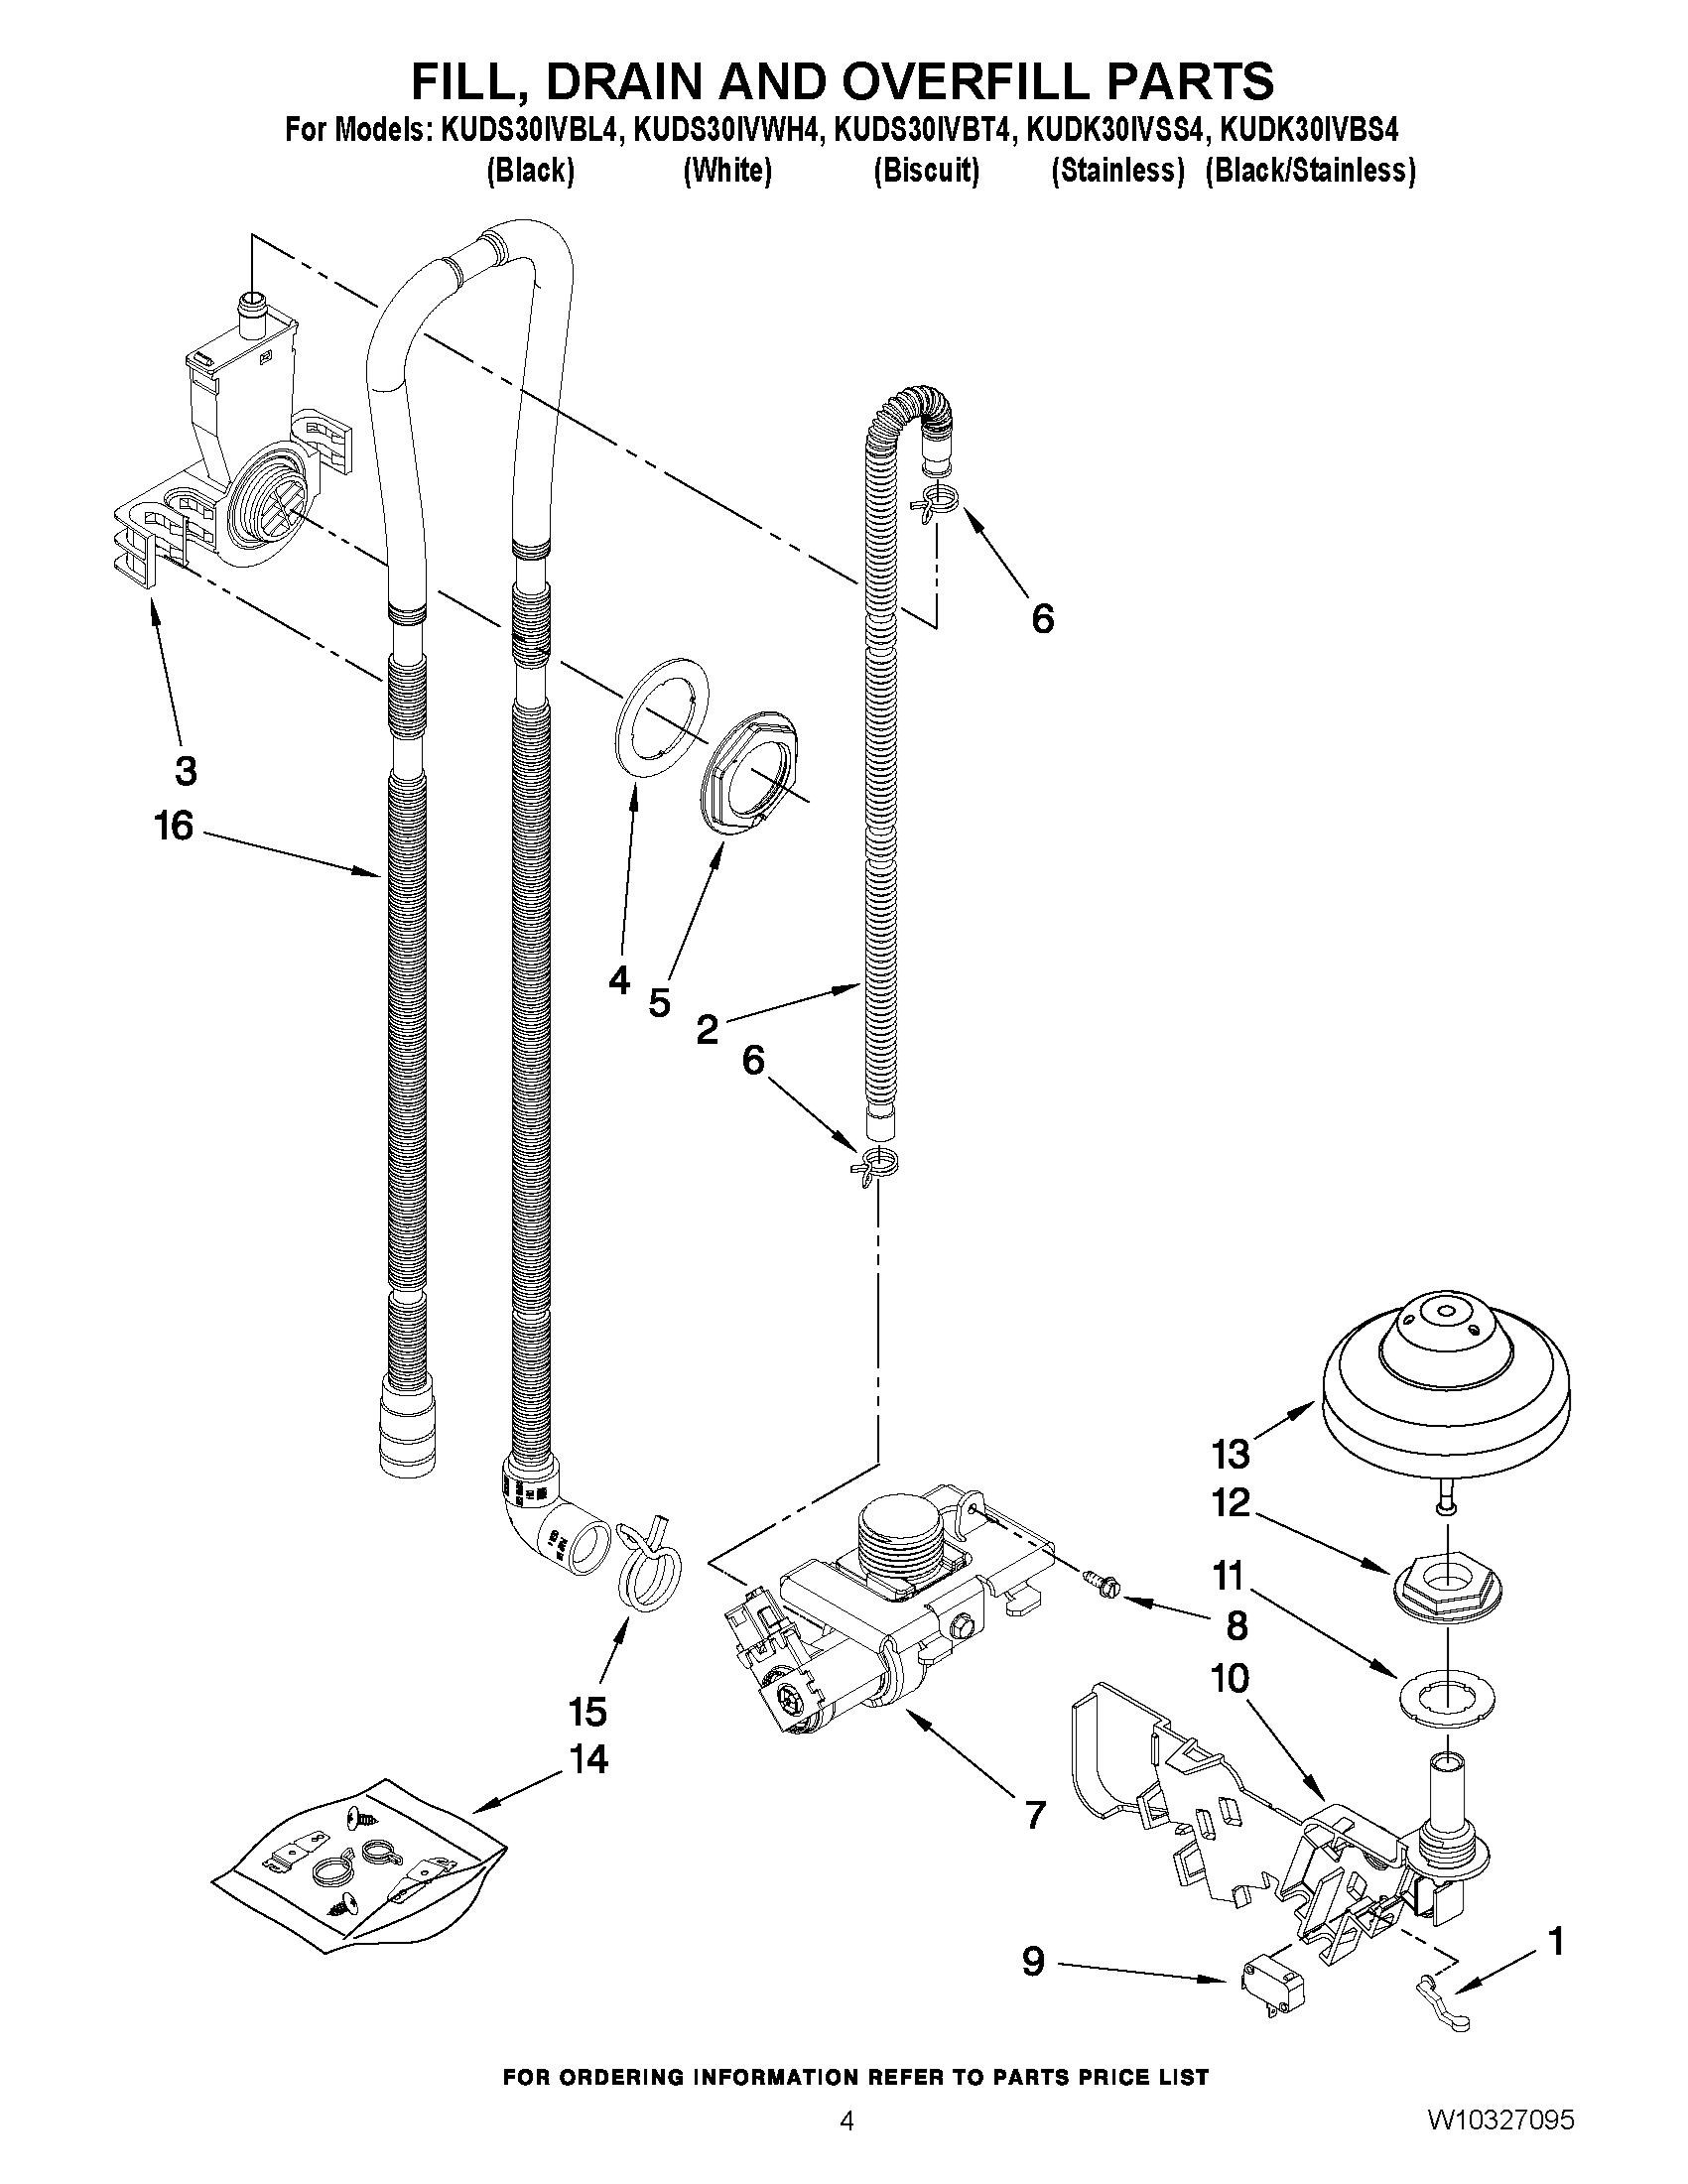 Kuds30ivbl4 Fill Drain And Overfill Parts